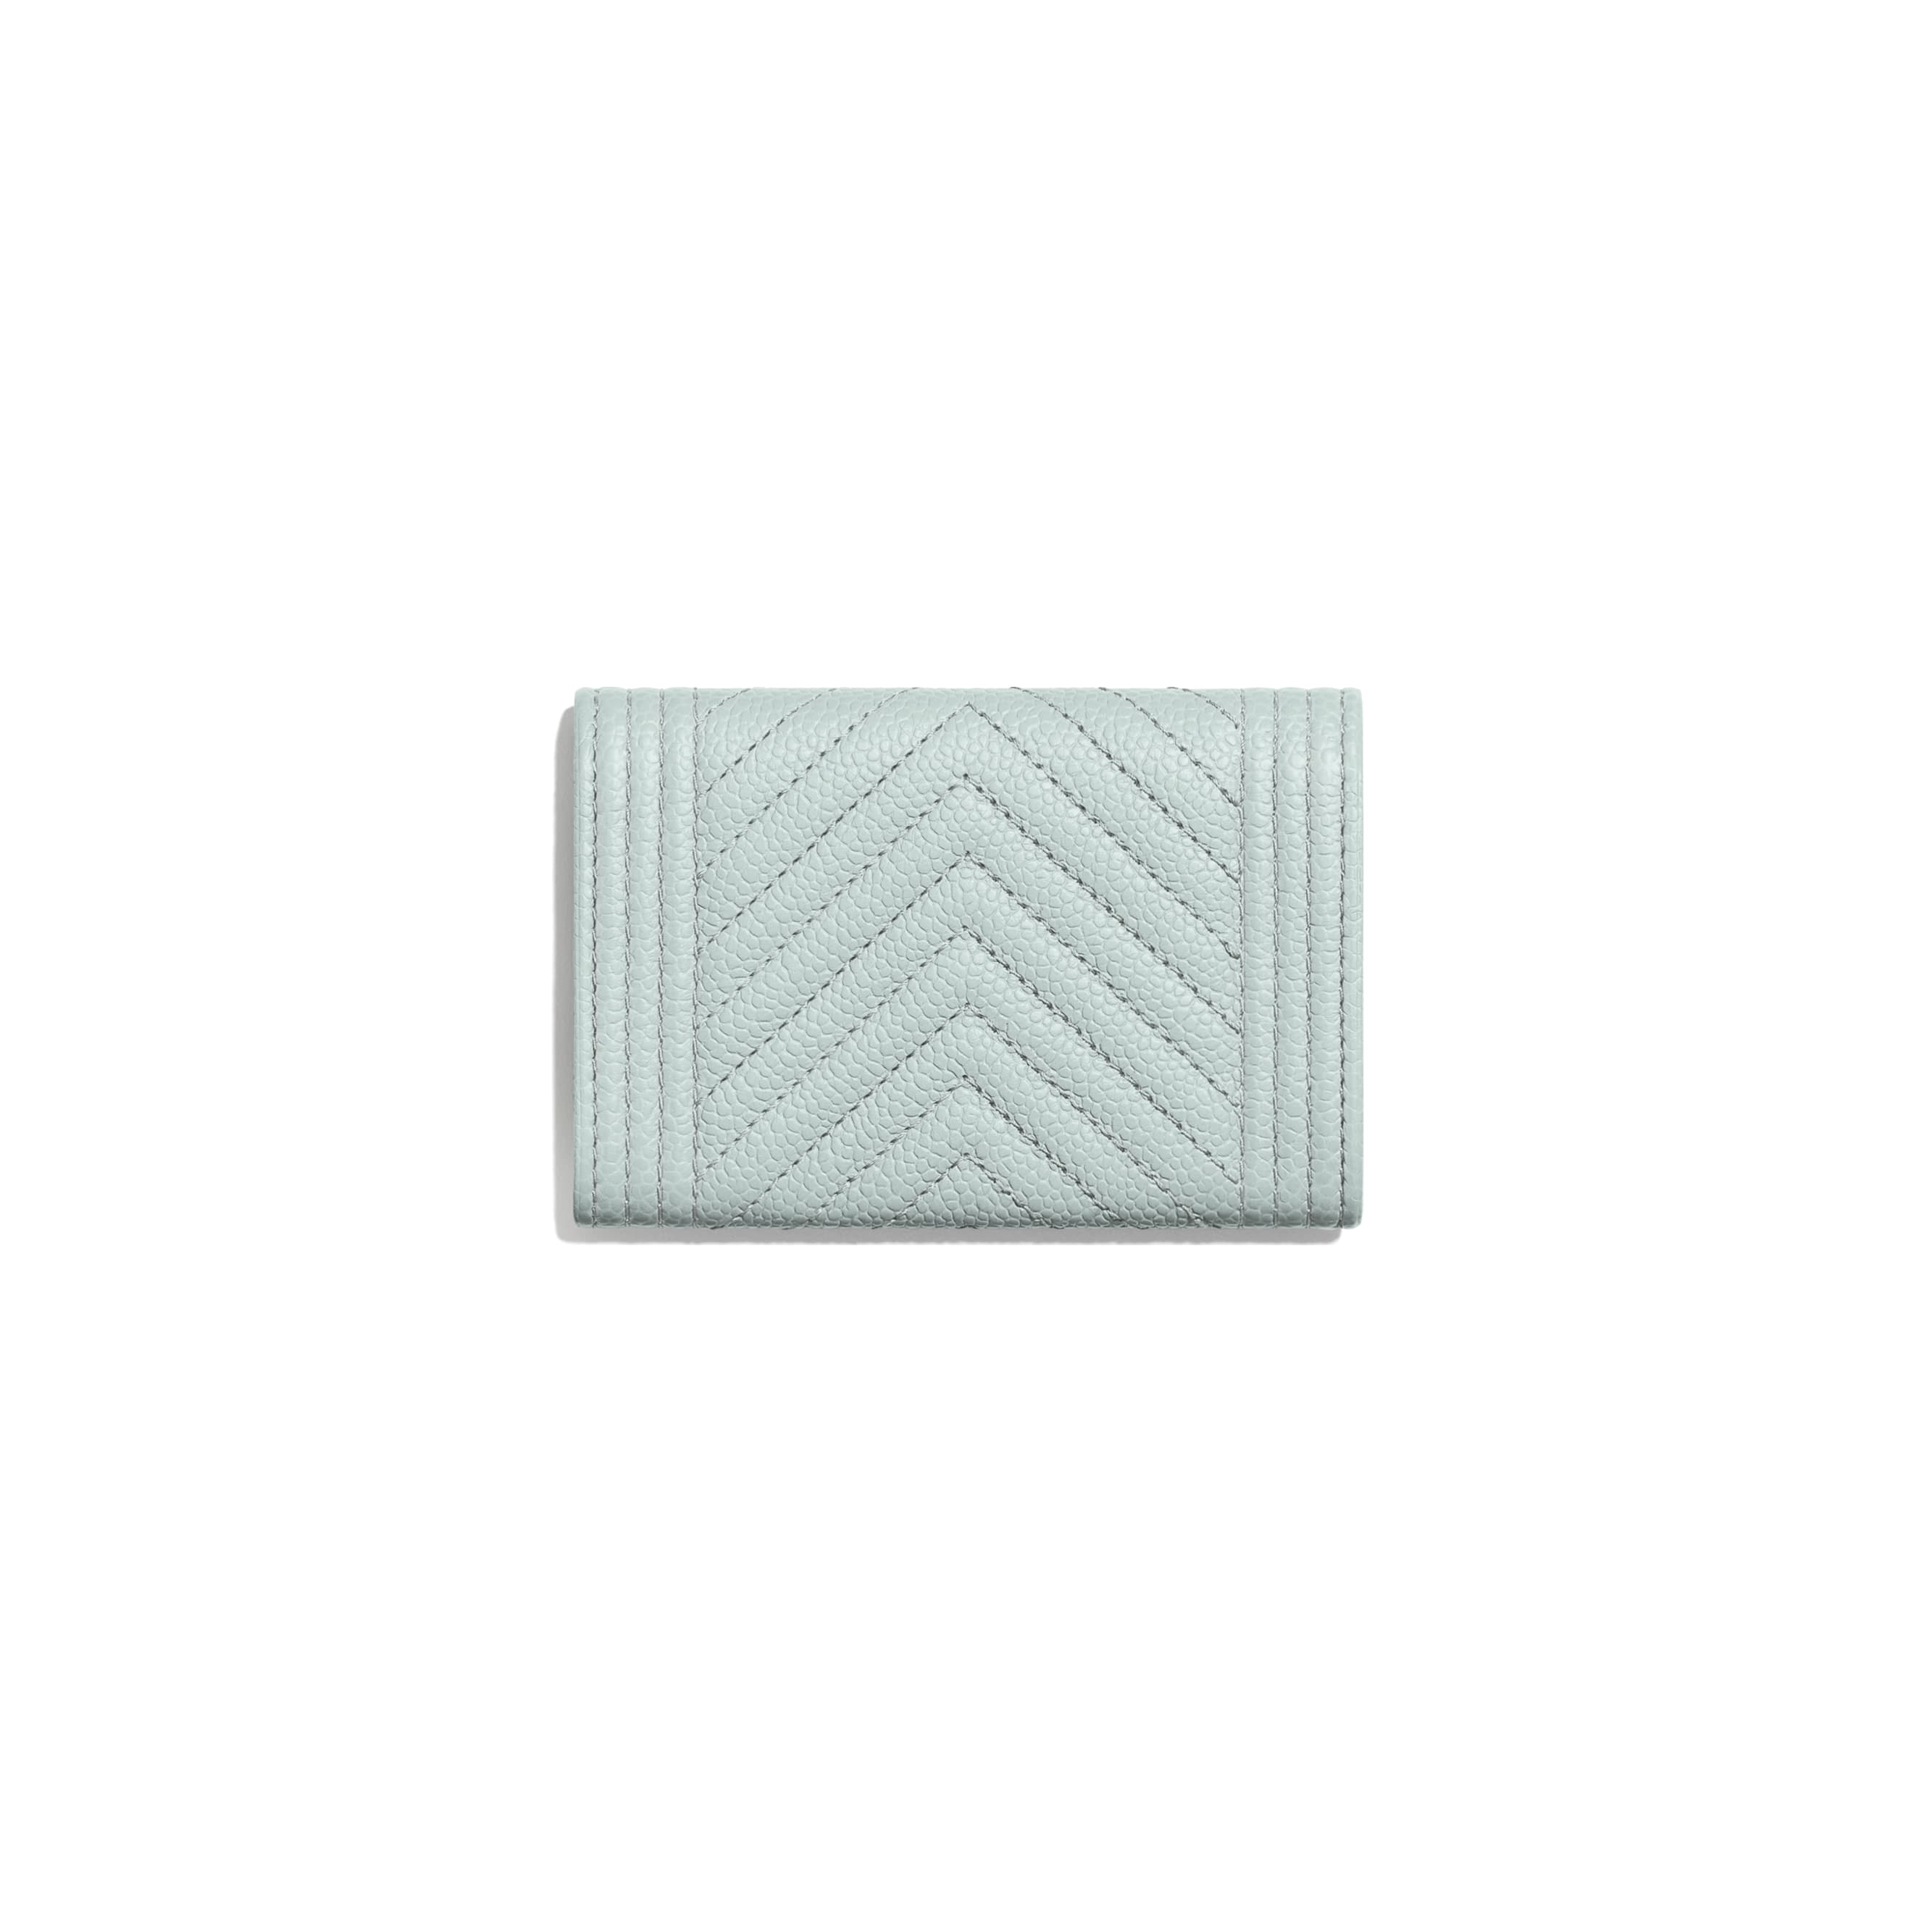 BOY CHANEL Flap Card Holder - Light Blue - Shiny Grained Calfskin & Silver-Tone Metal - Alternative view - see standard sized version